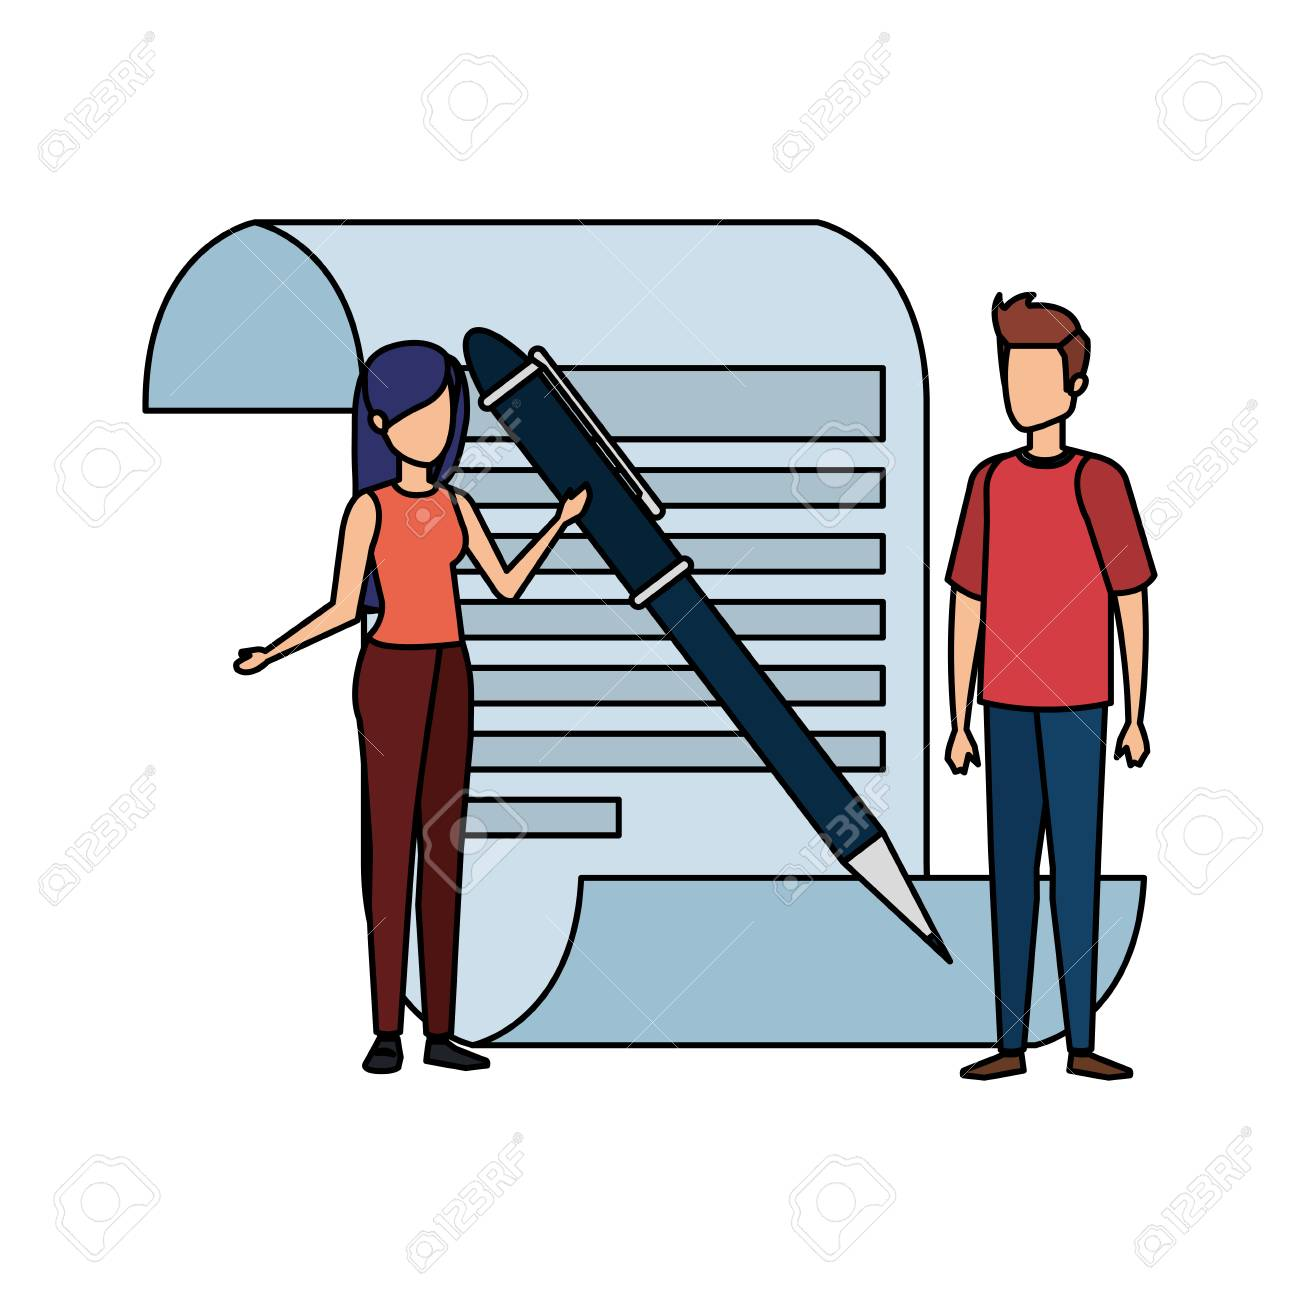 paper document with business person and pen vector illustration design - 126173230